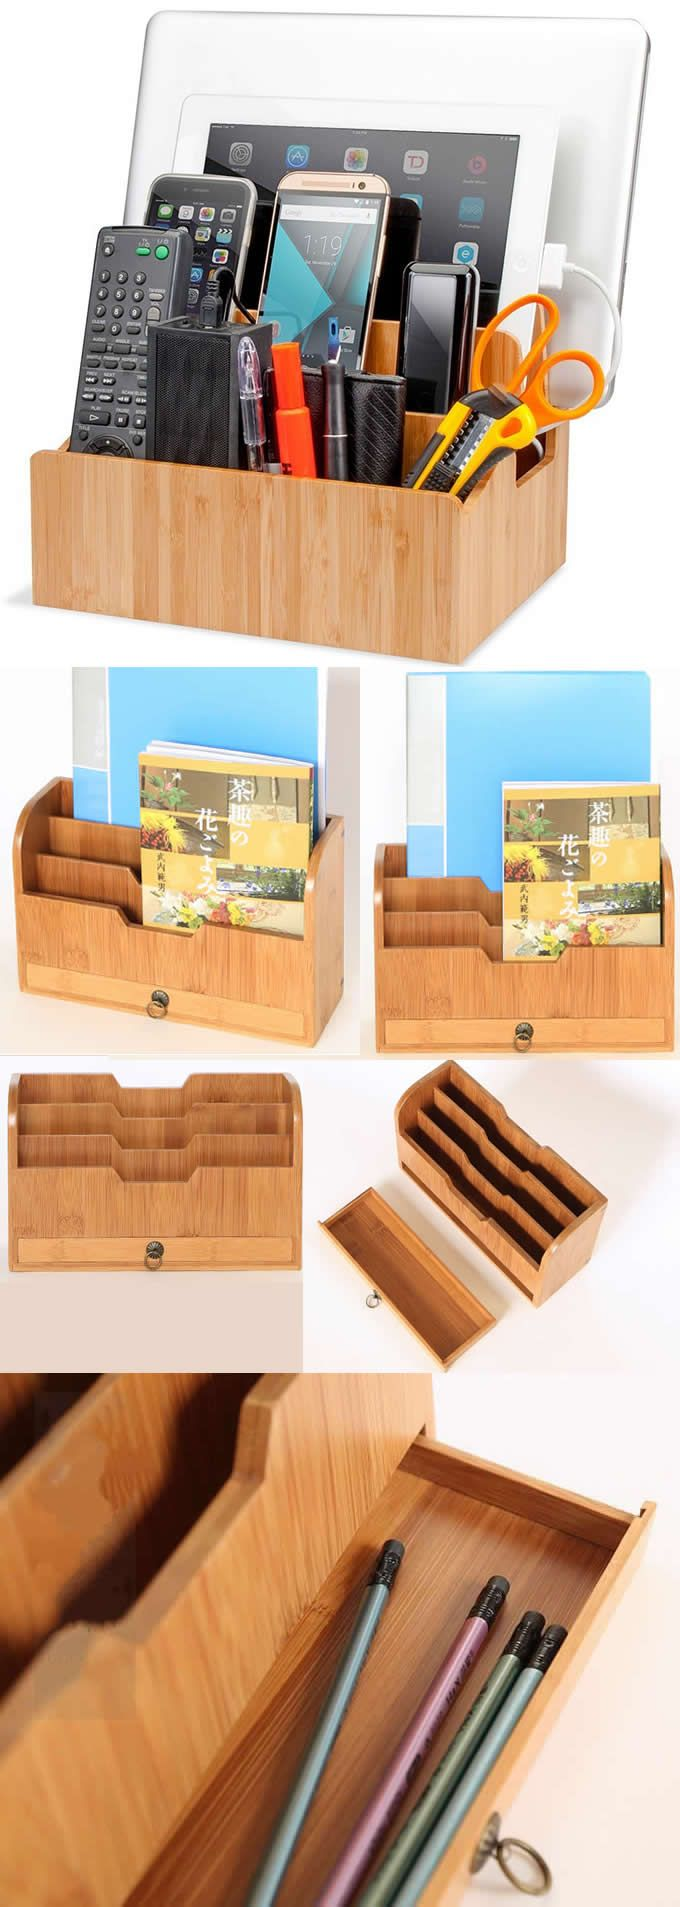 Bamboo Wooden Cell Phone iPad iPhone Stand